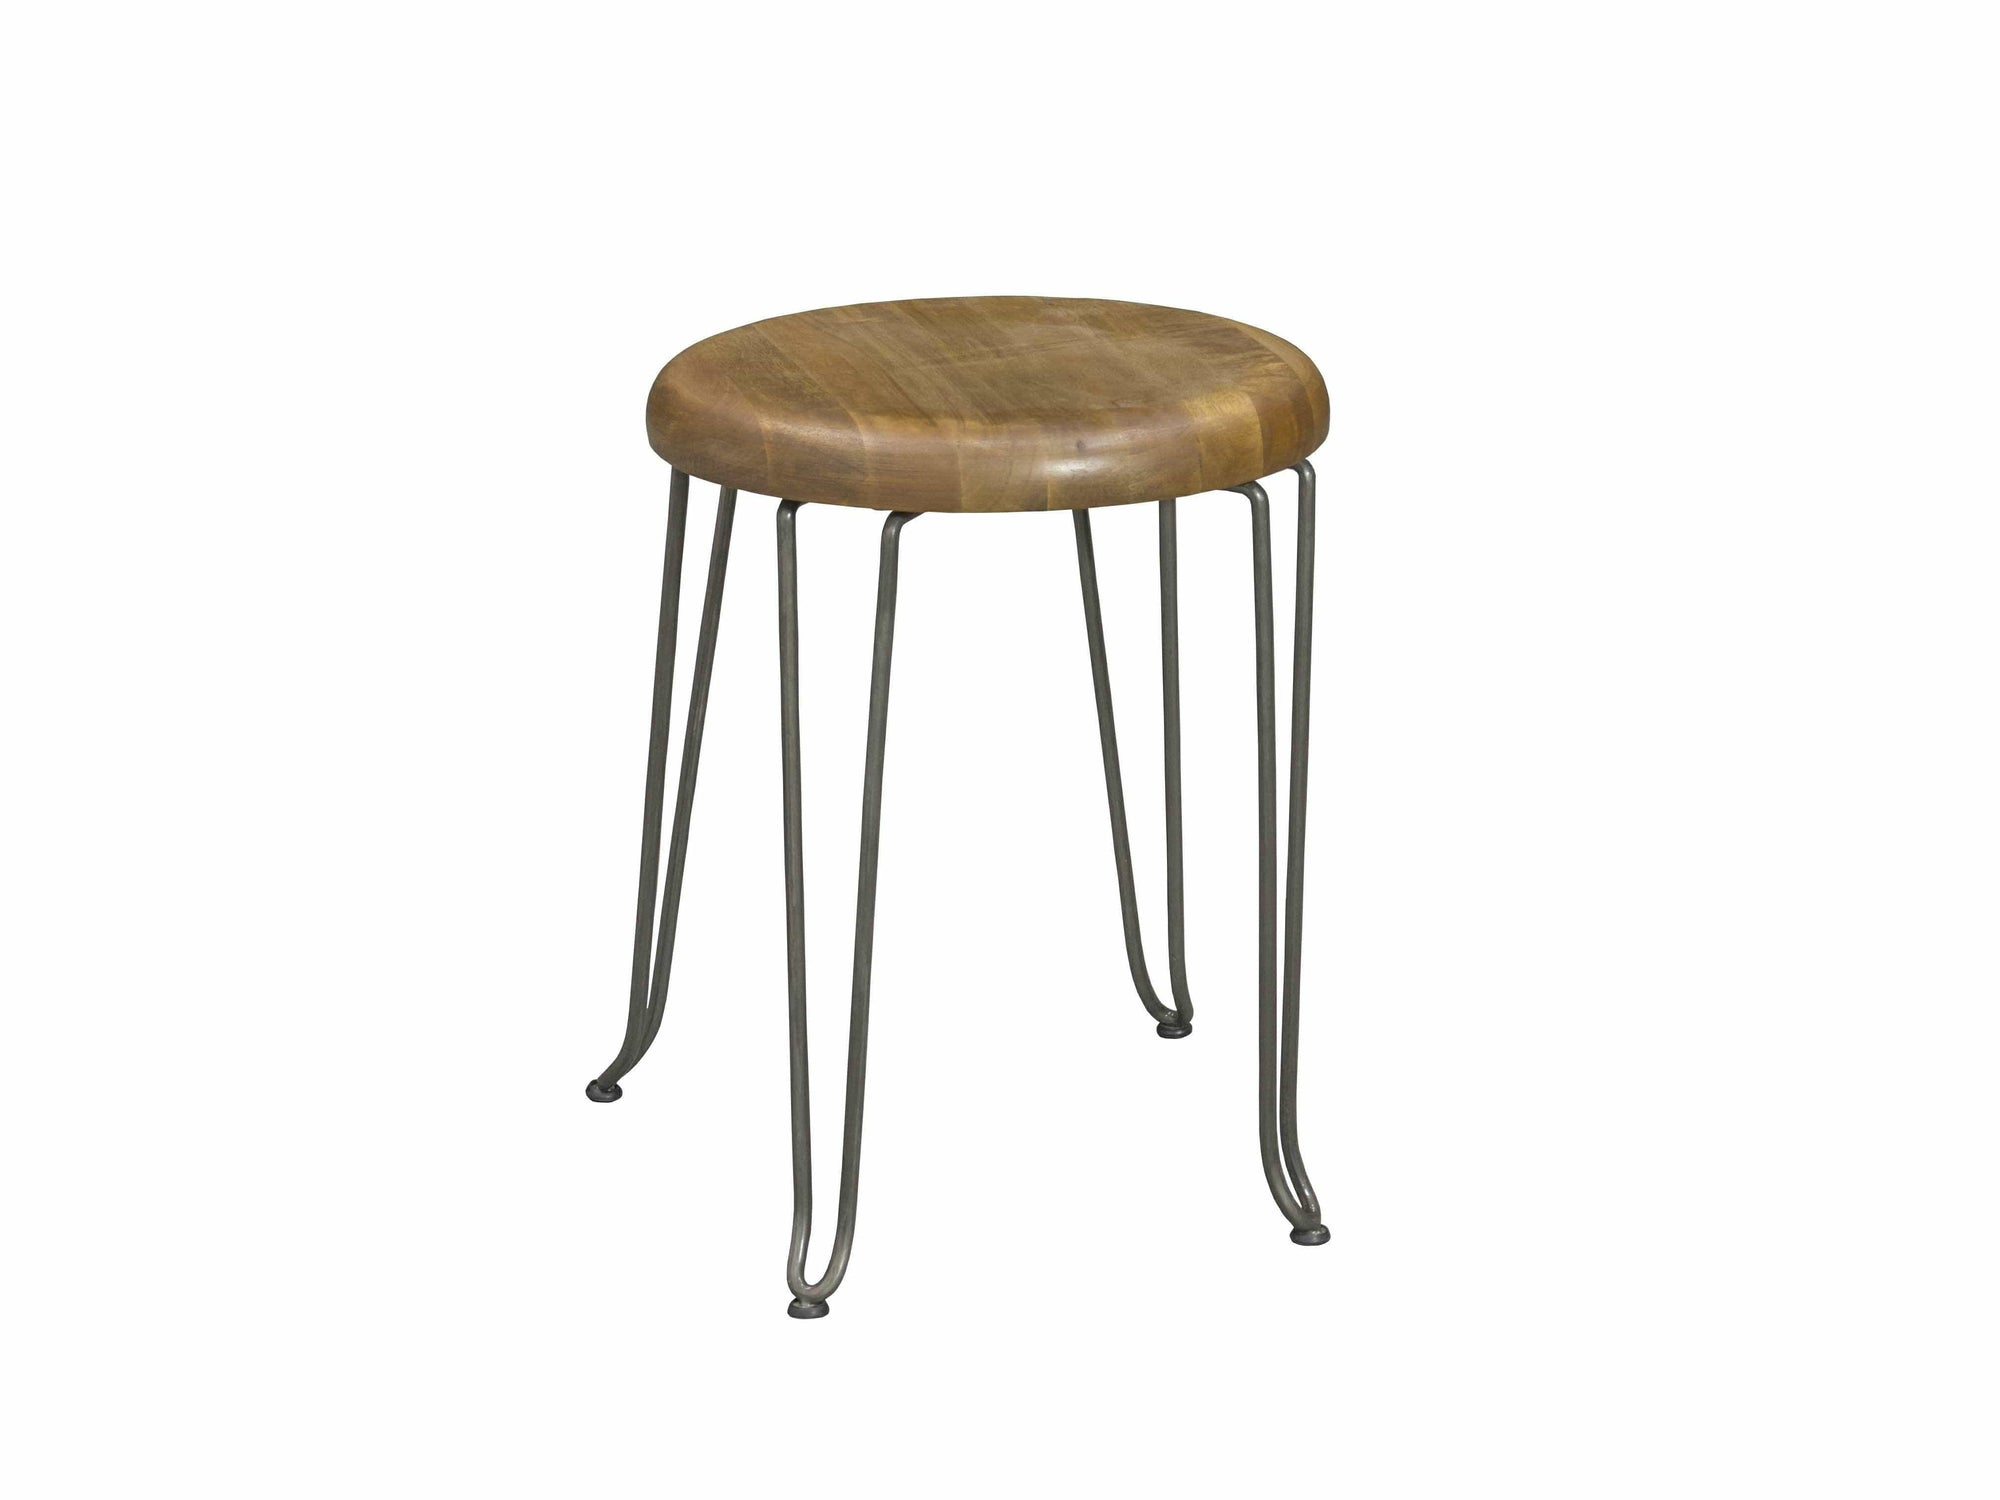 London Industrial Stool with Hairpin Legs